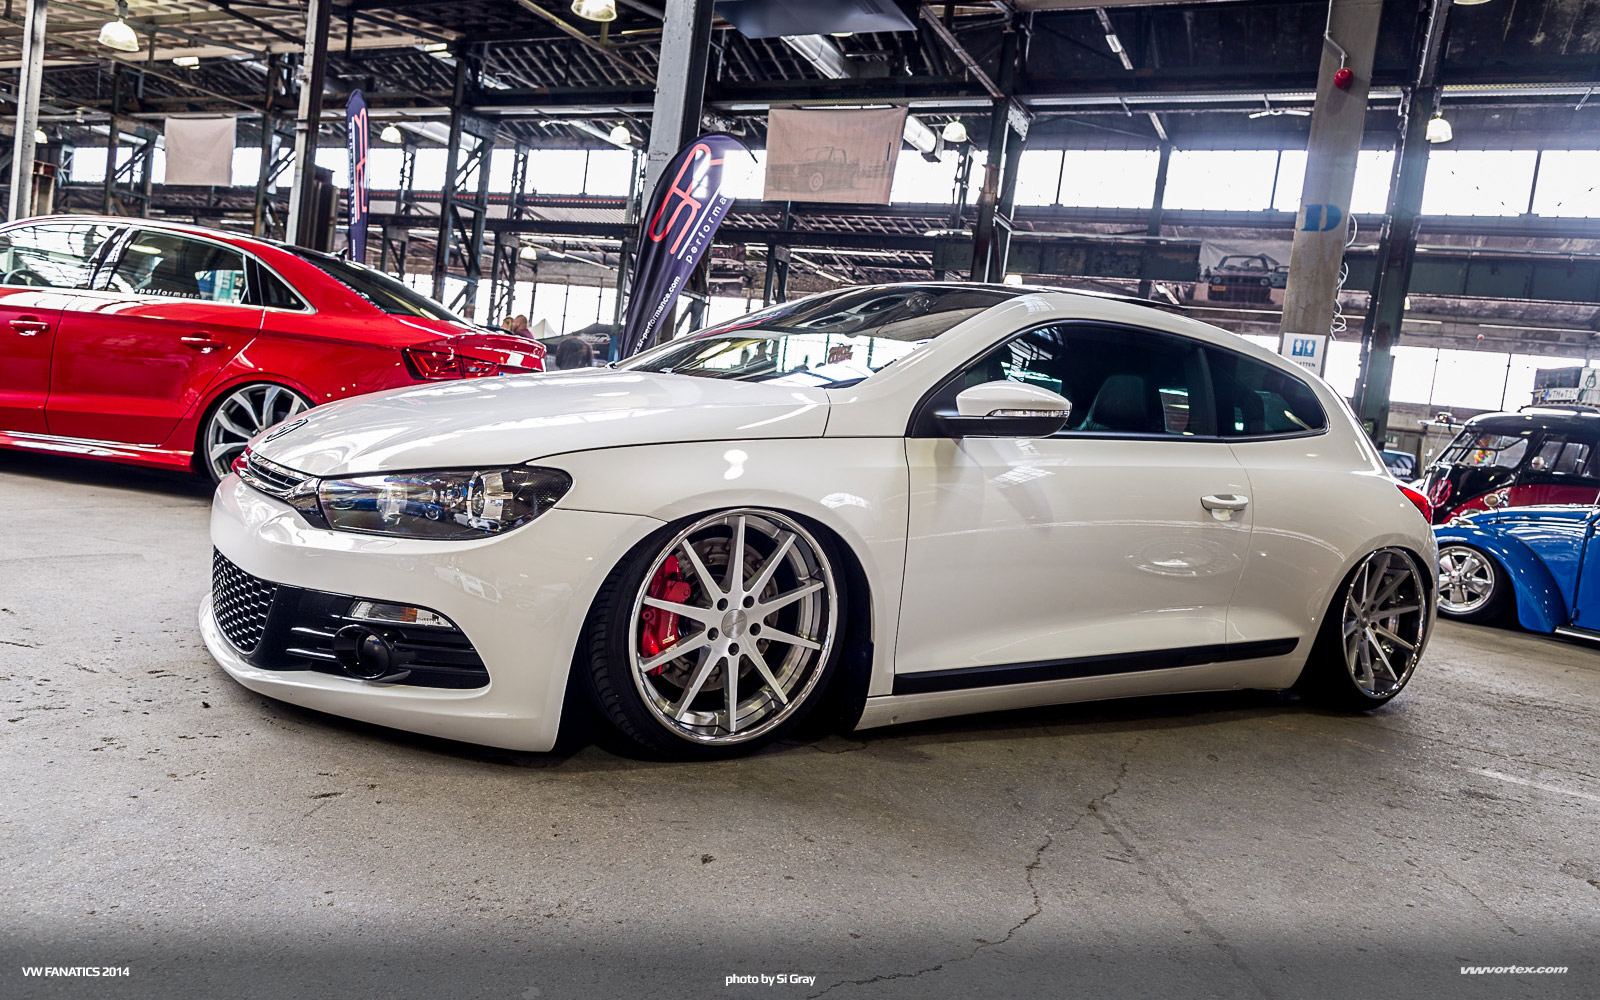 VWFanatics-2014-Si-Gray-390